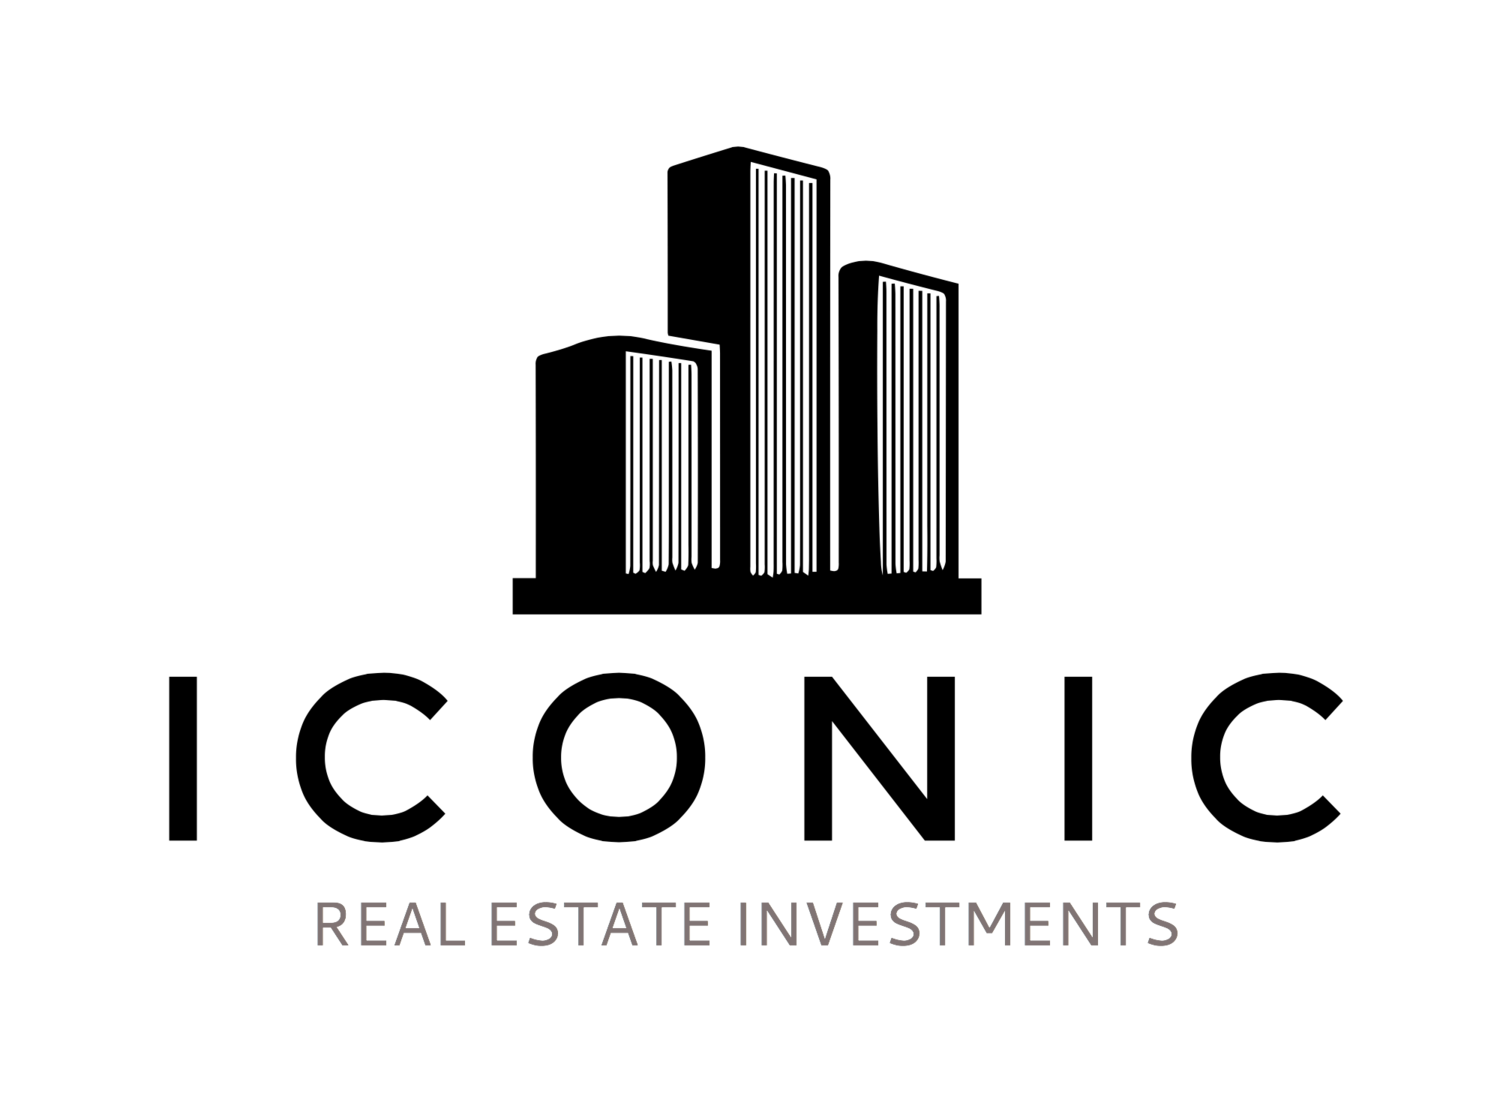 Iconic Real Estate Investments